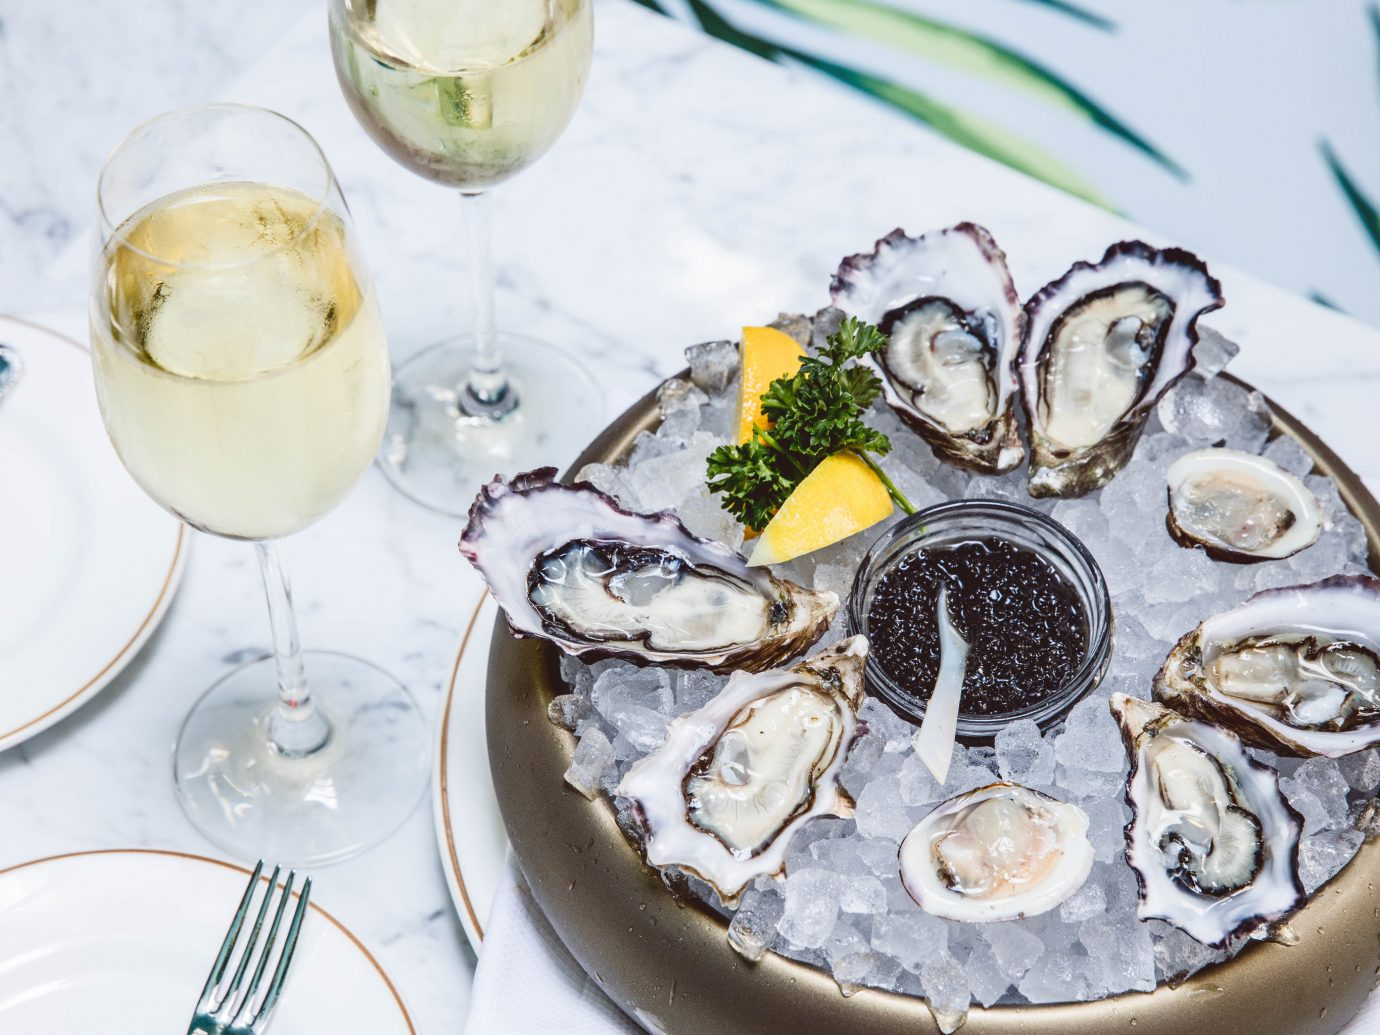 Food + Drink Travel Tips plate table oyster food Seafood clams oysters mussels and scallops animal source foods brunch tableware clam dish platter recipe several meal